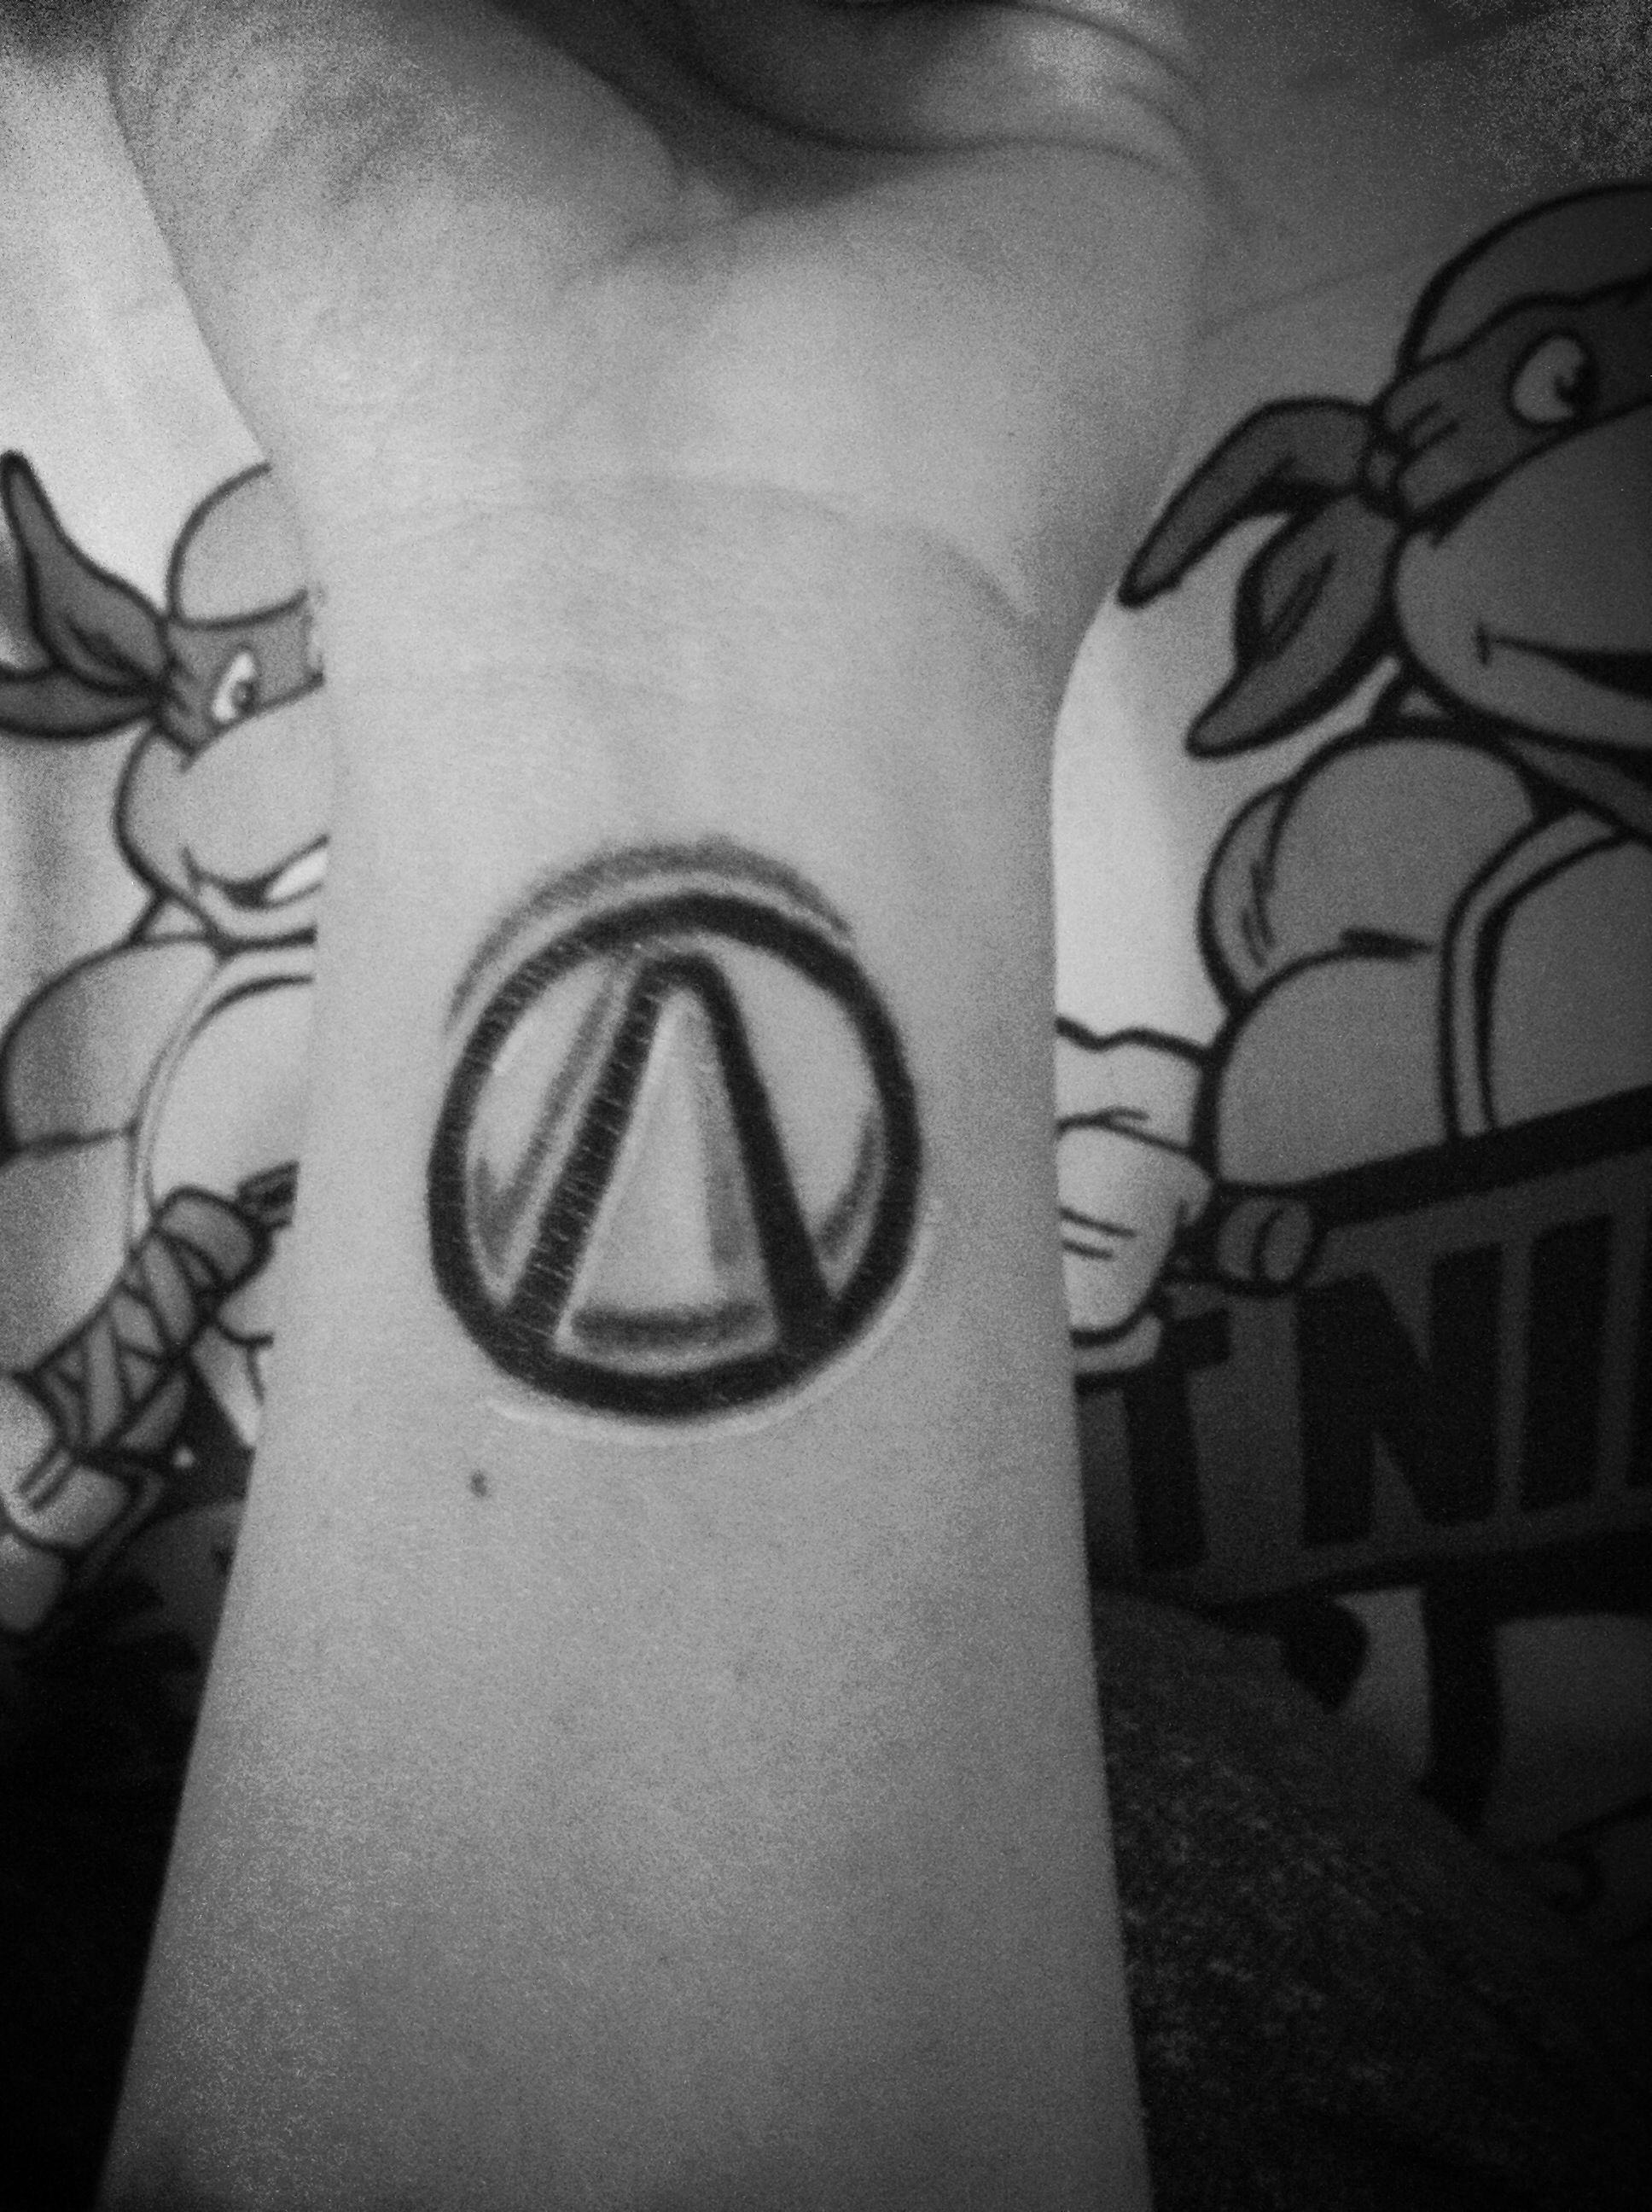 The vault symbol ) Cool tattoos, Tattoos